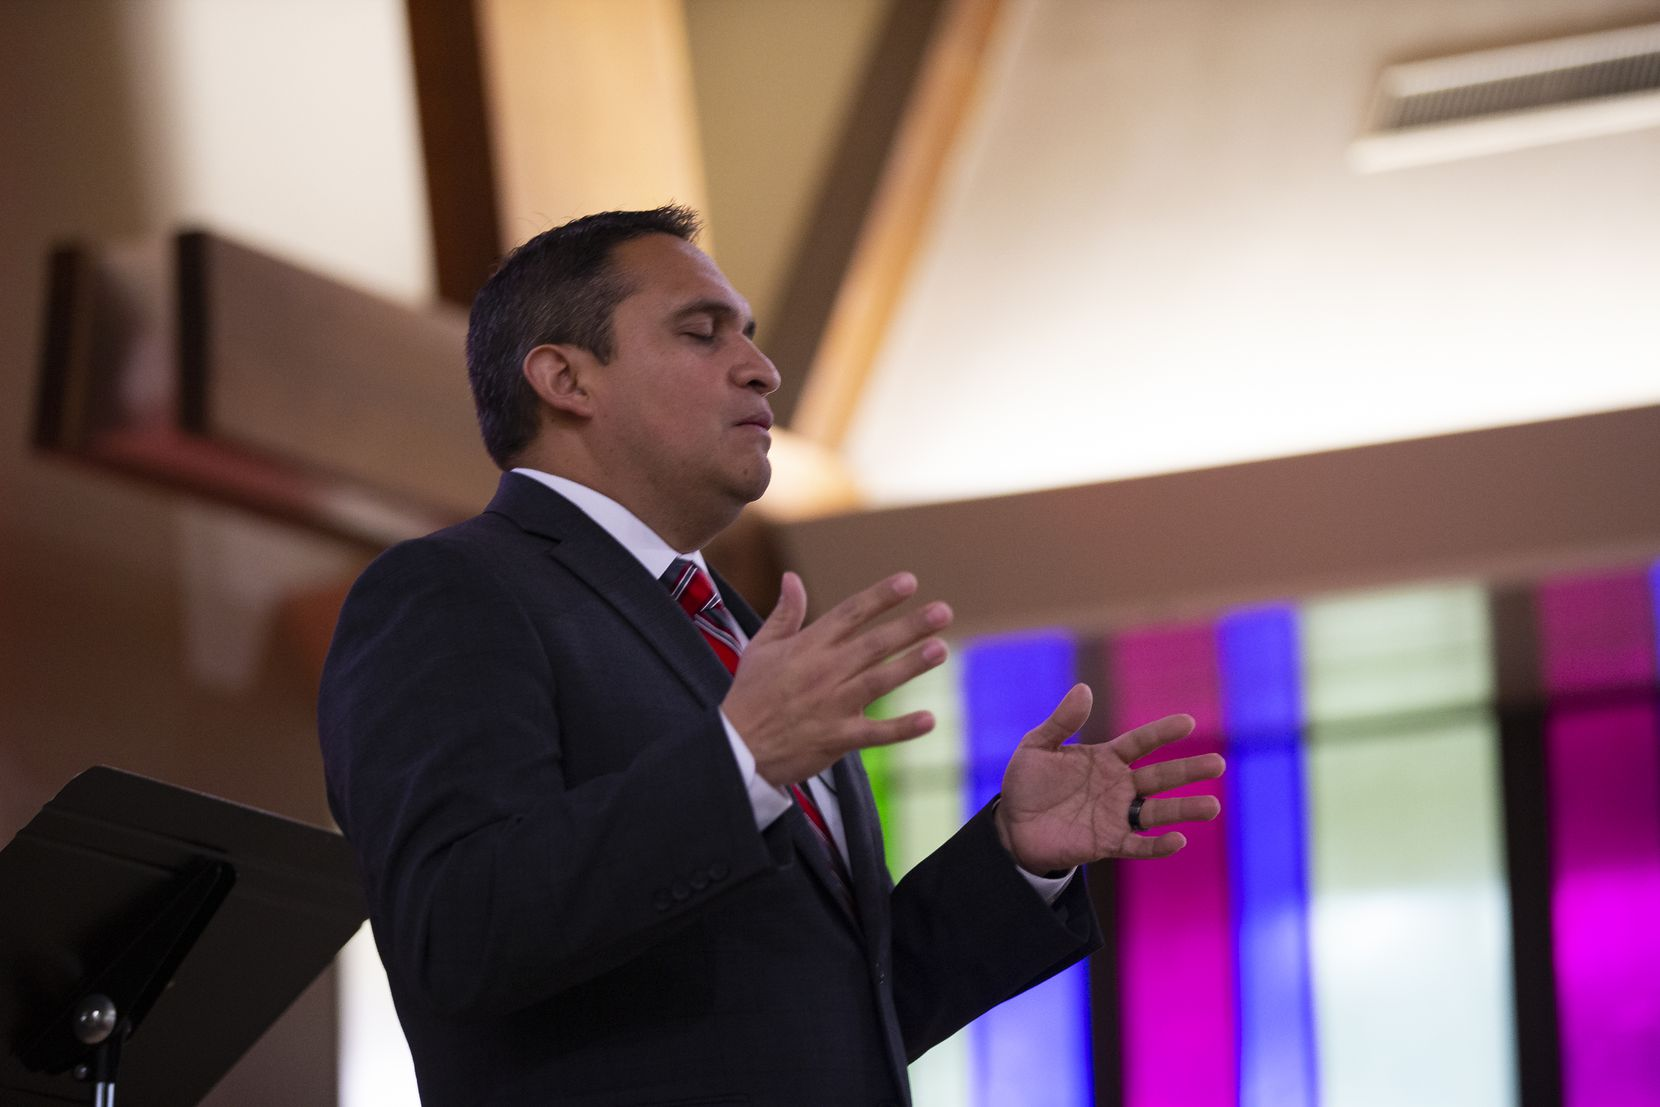 Pastor Ricardo Brambila led his congregation in prayer in First Mexican Baptist Church's new location Sunday — its first service in the former John Calvin Presbyterian Church after October's tornado, which destroyed Brambila's house of worship.